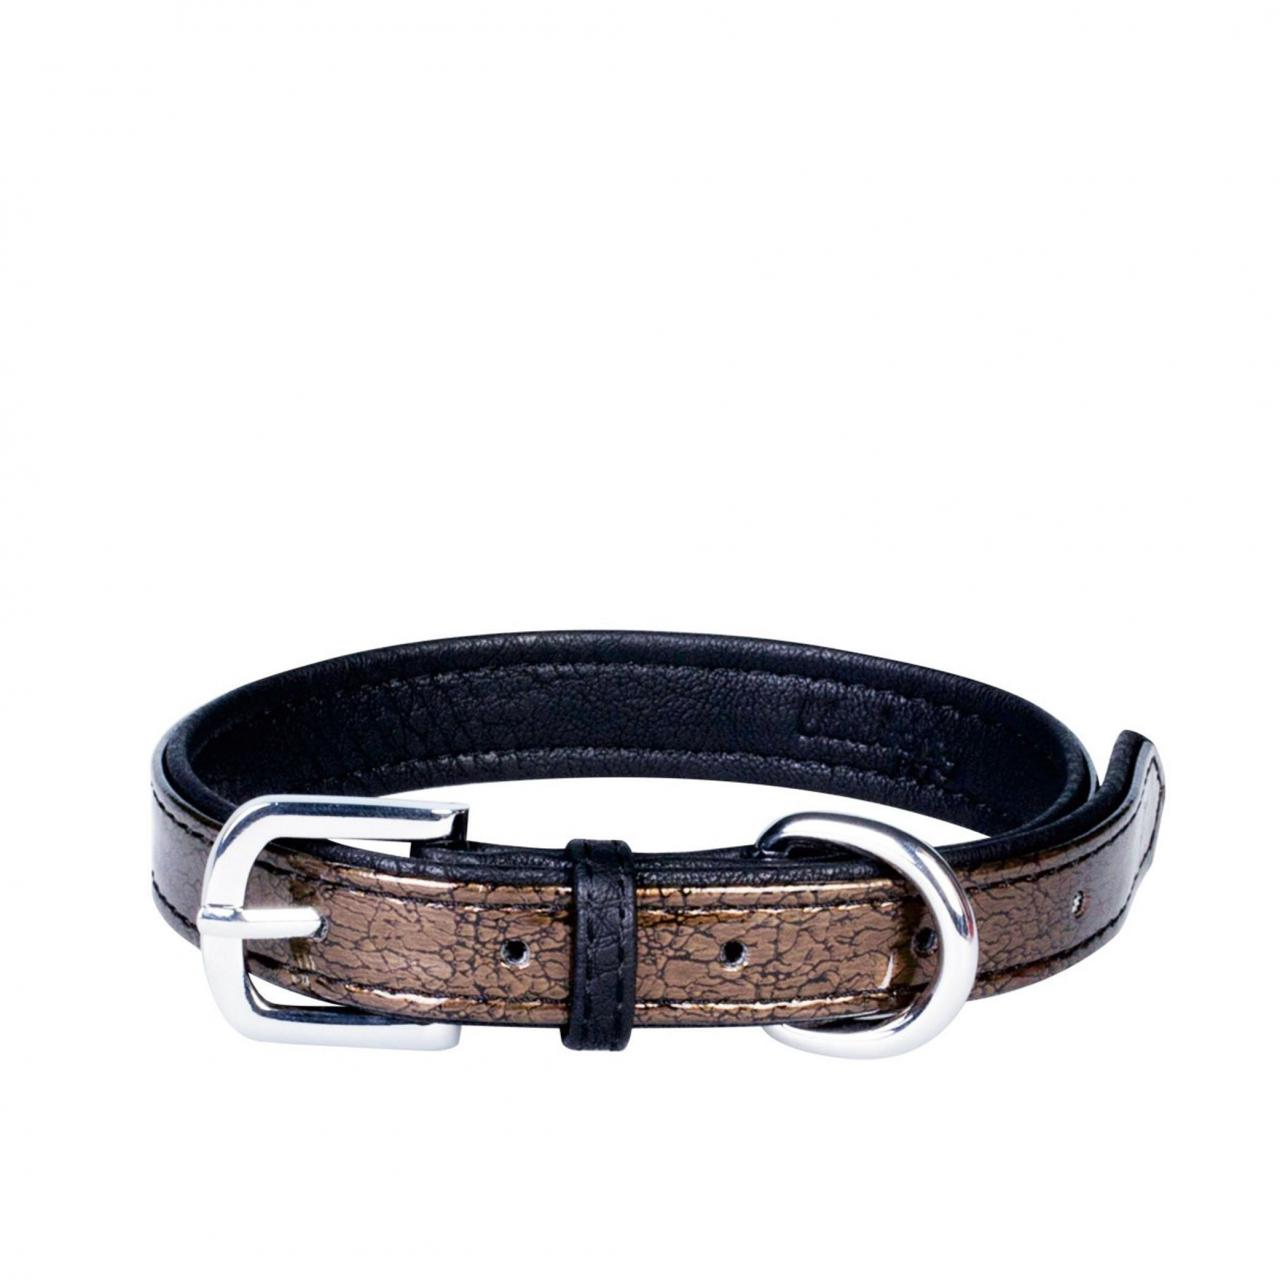 Faux Leather Snake Skin Print Embossed Dog Collars